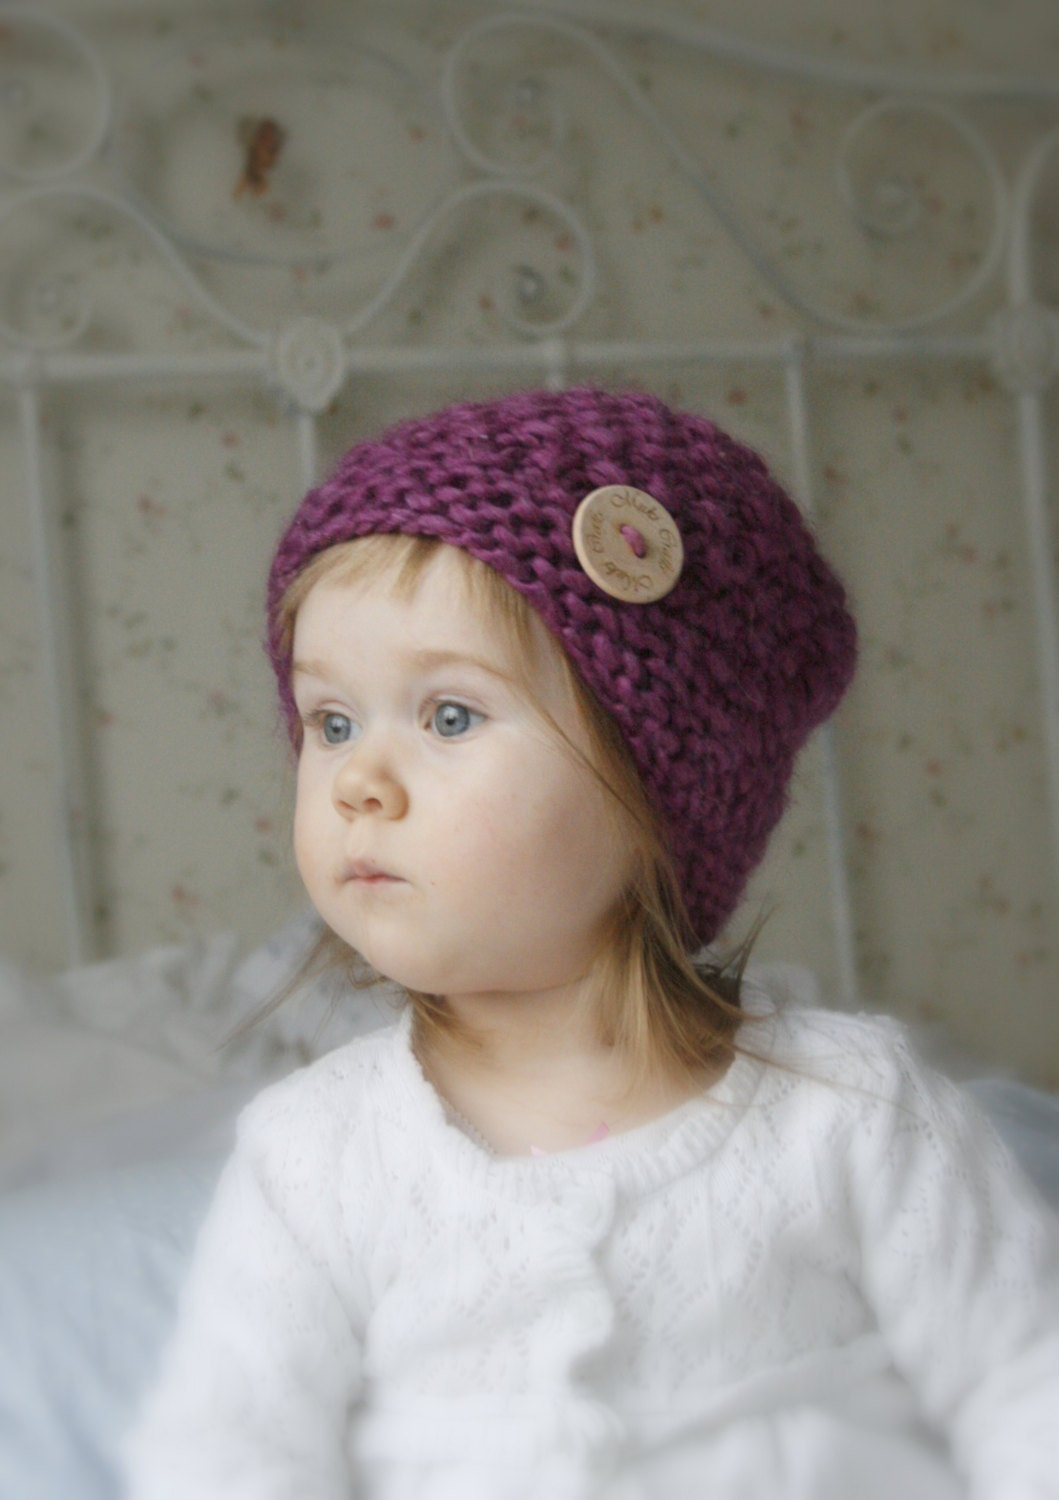 Toddler Beanie Knitting Pattern : KNITTING PATTERN basic chunky beanie hat Bel baby kids